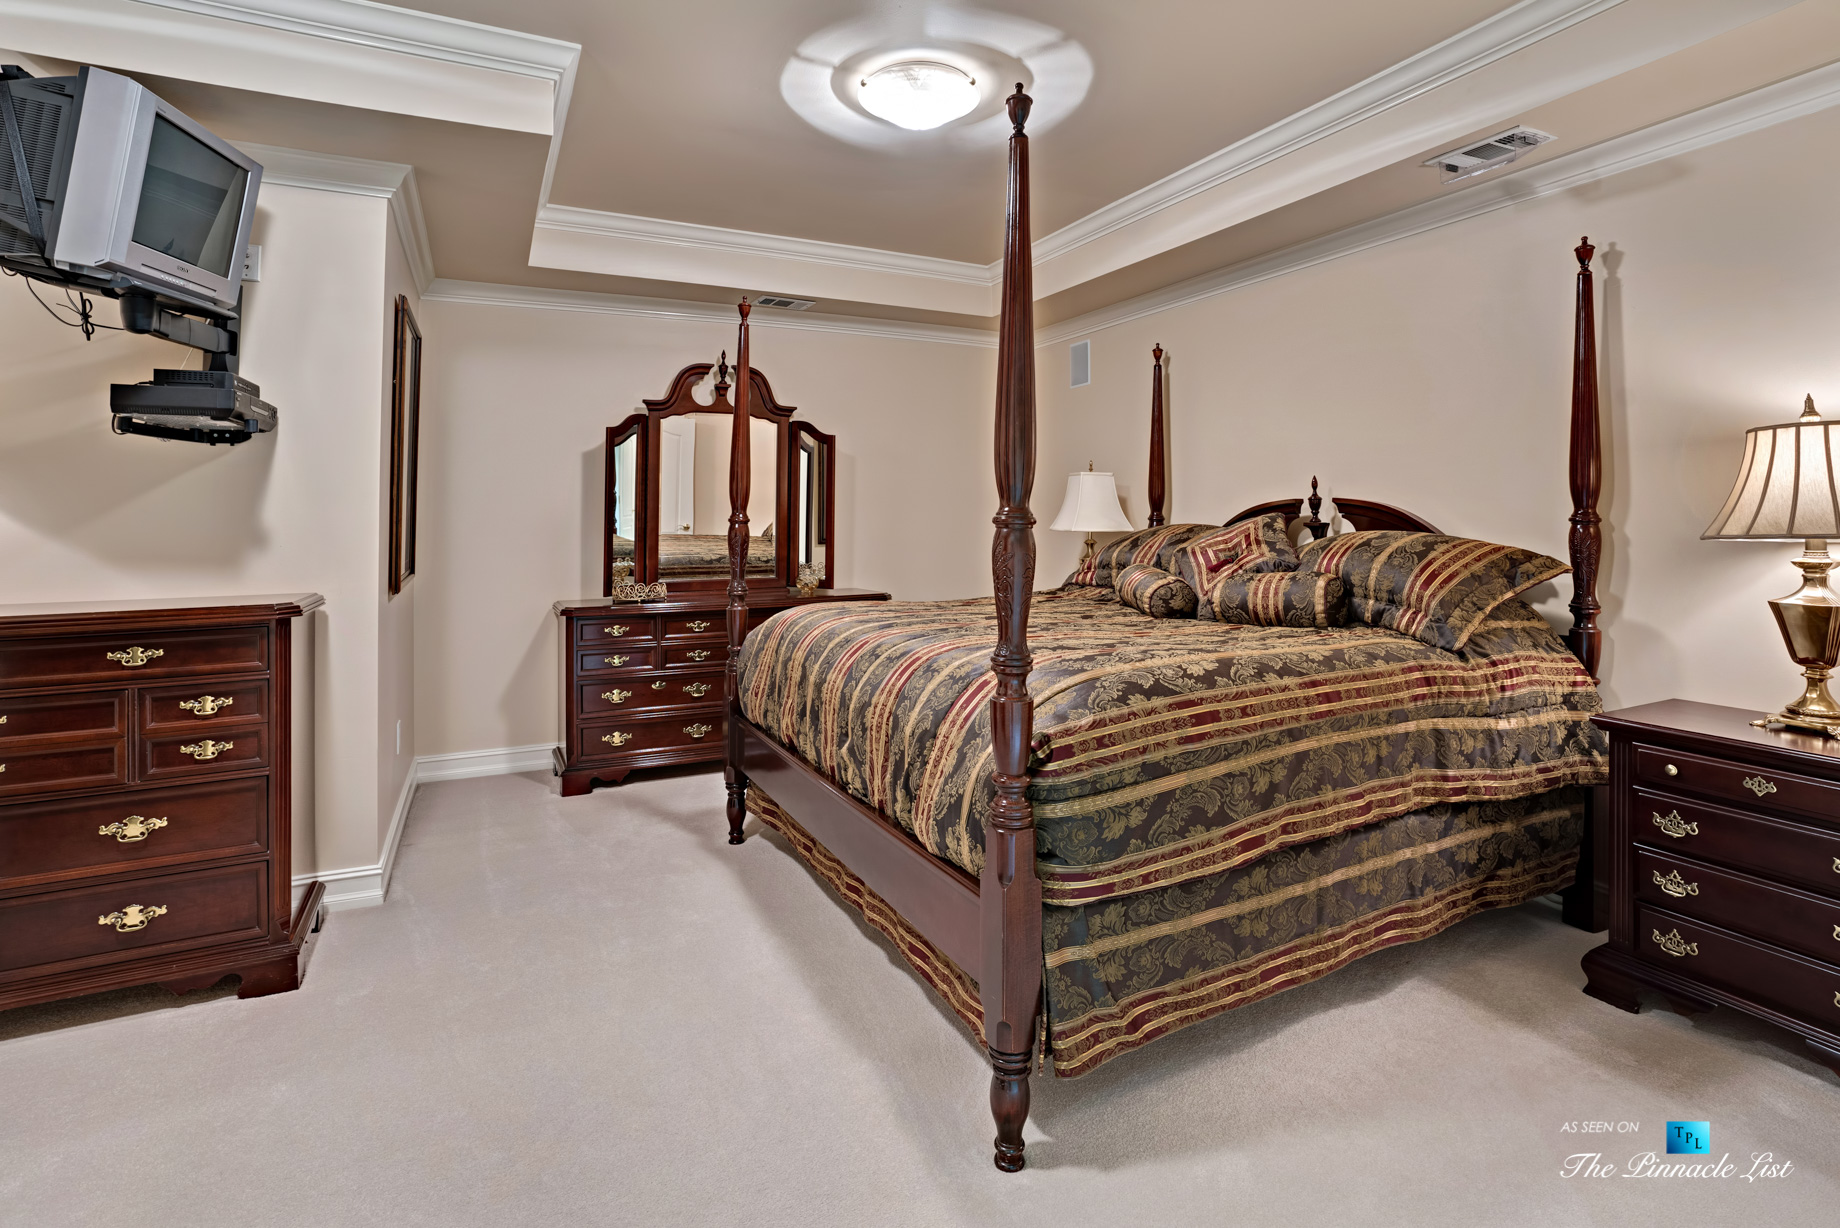 2219 Costley Mill Rd NE, Conyers, GA, USA – Bedroom – Luxury Real Estate – Equestrian Country Home